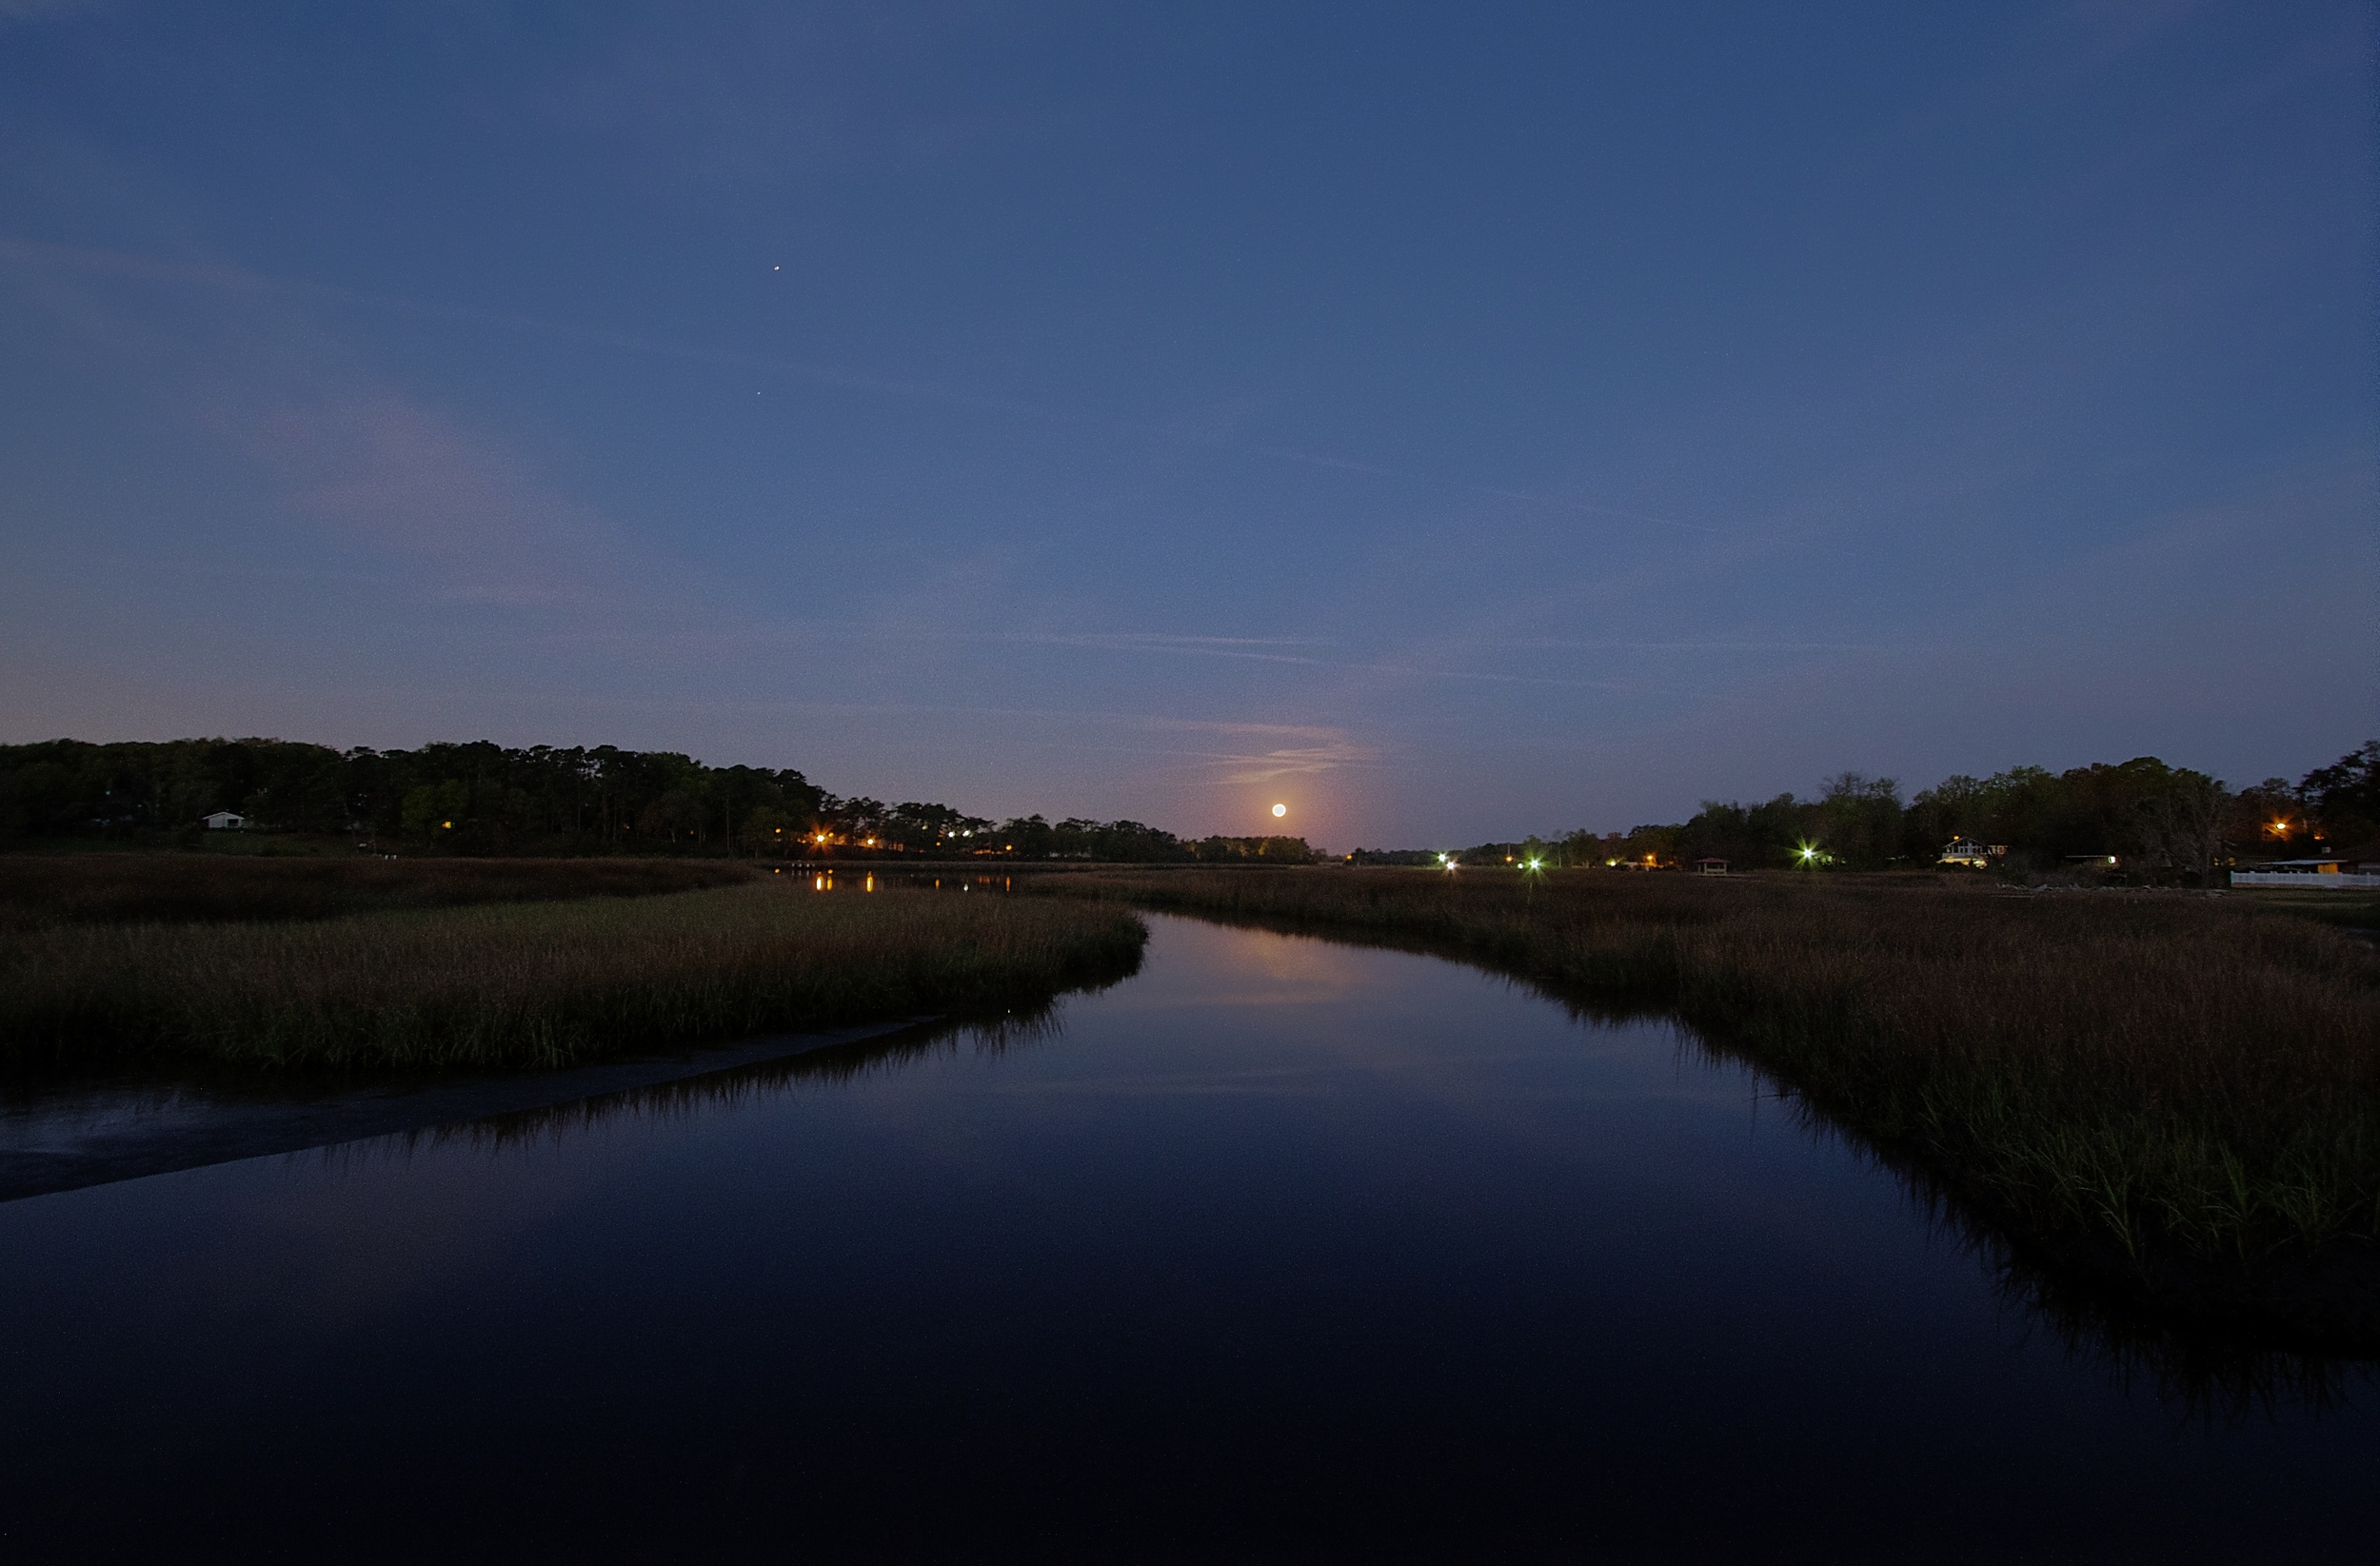 The setting full moon pulls the curtain of night below the western horizon.